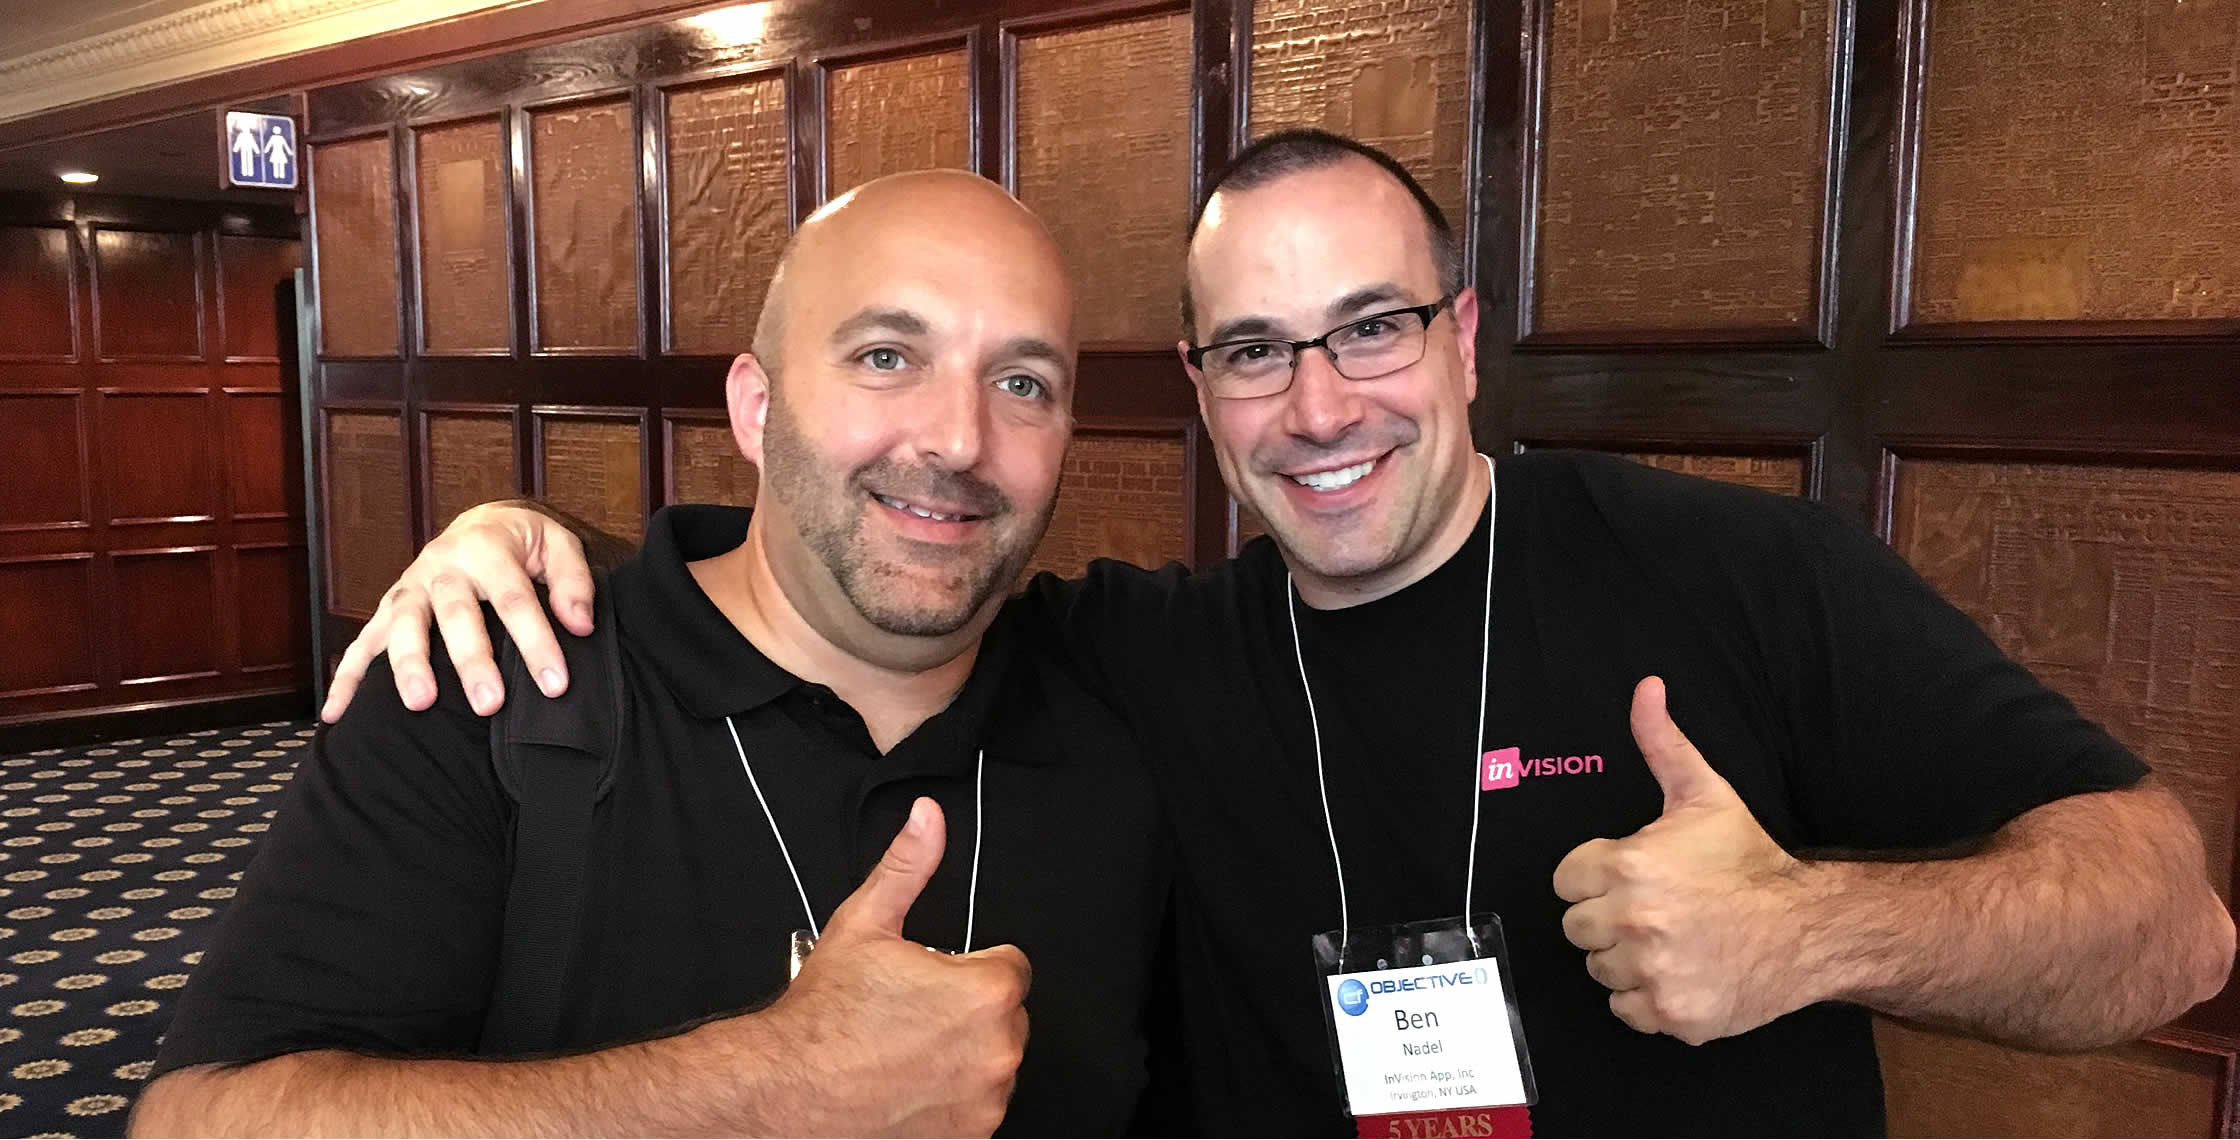 Ben Nadel at cf.Objective() 2017 (Washington, D.C.) with: Mike Sprague